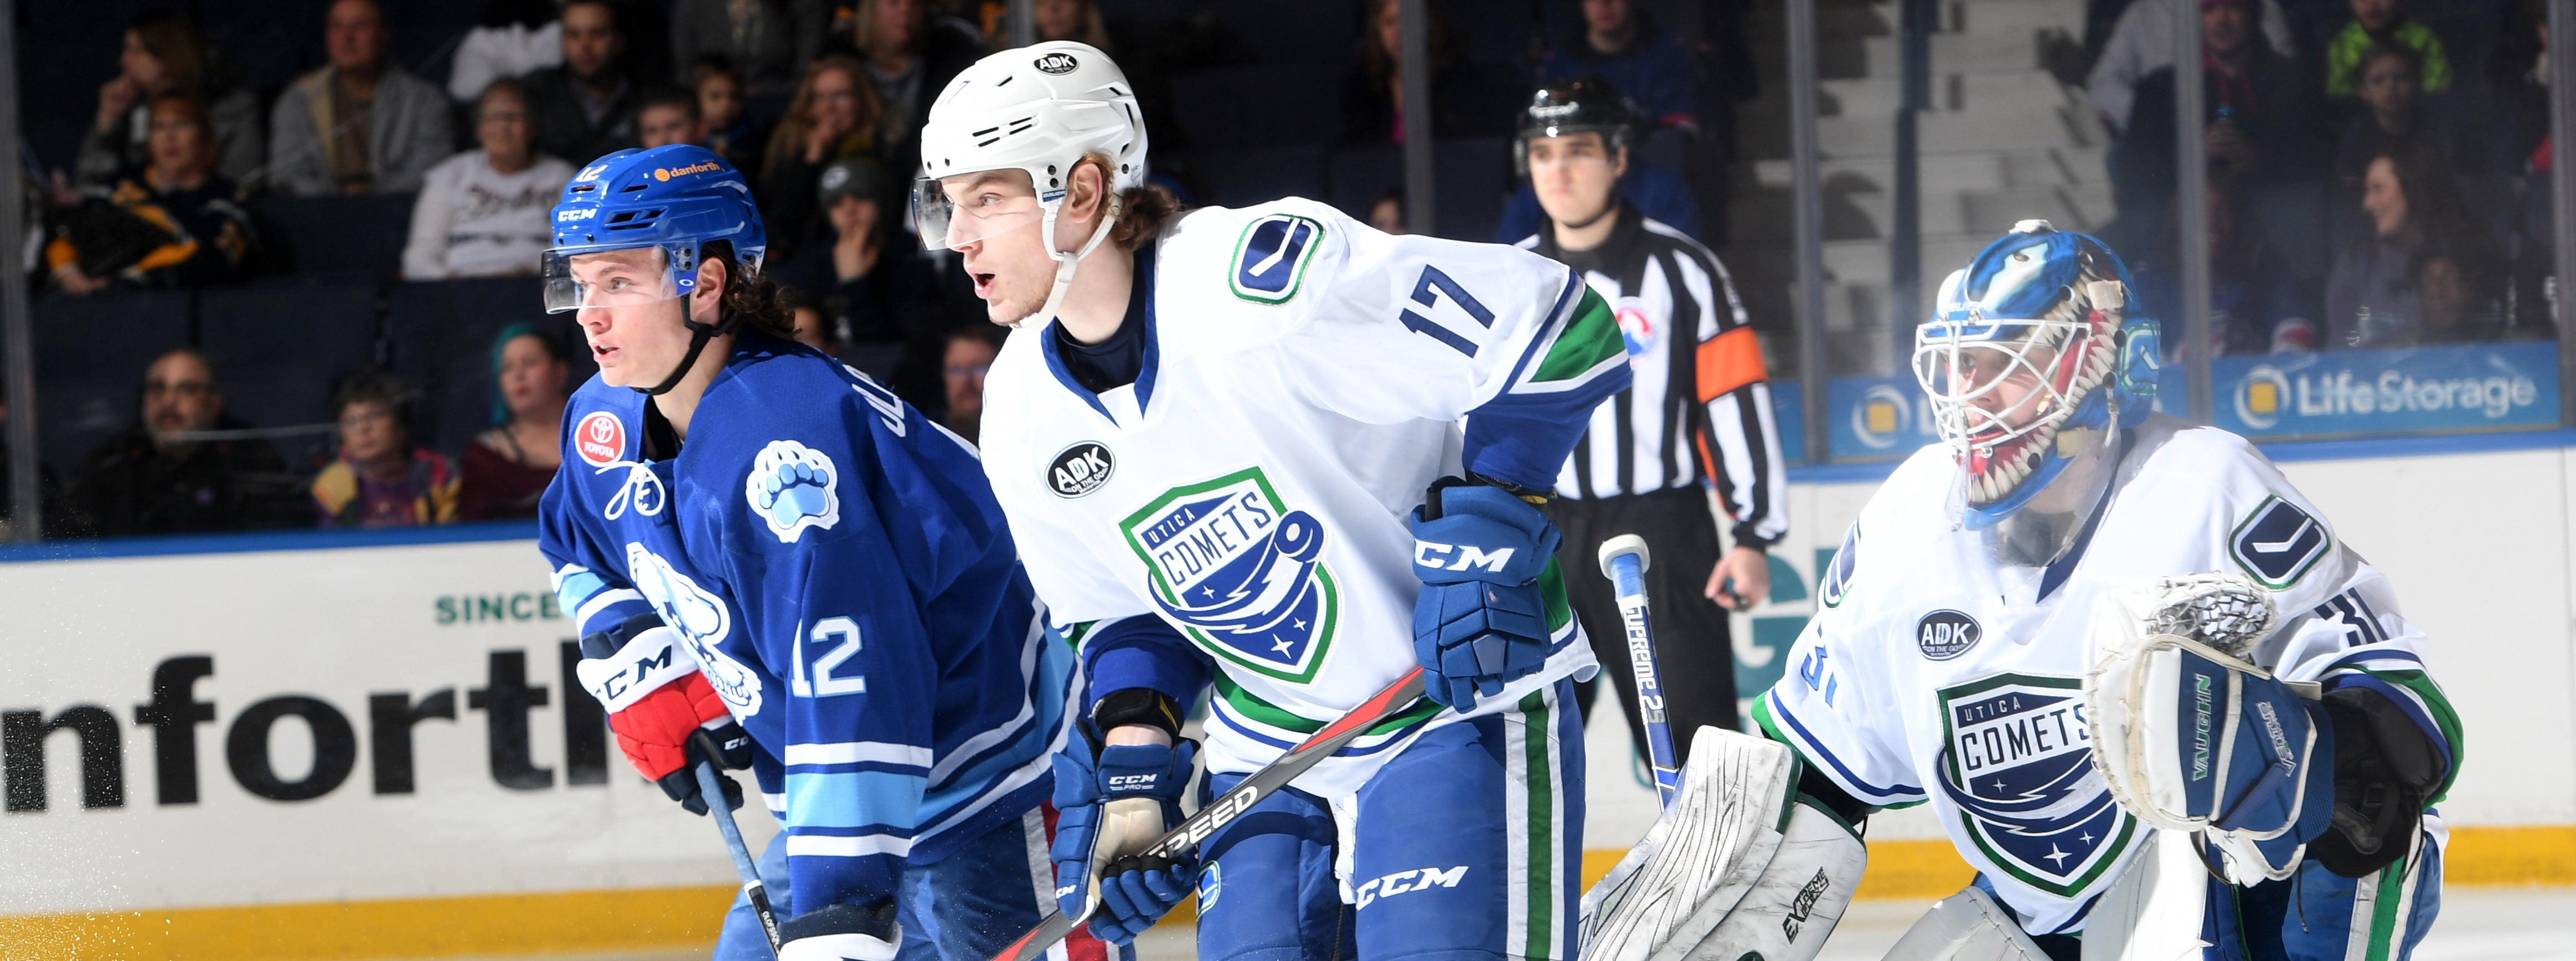 KULBAKOV'S 48 STOPS HELP COMETS TO POINT